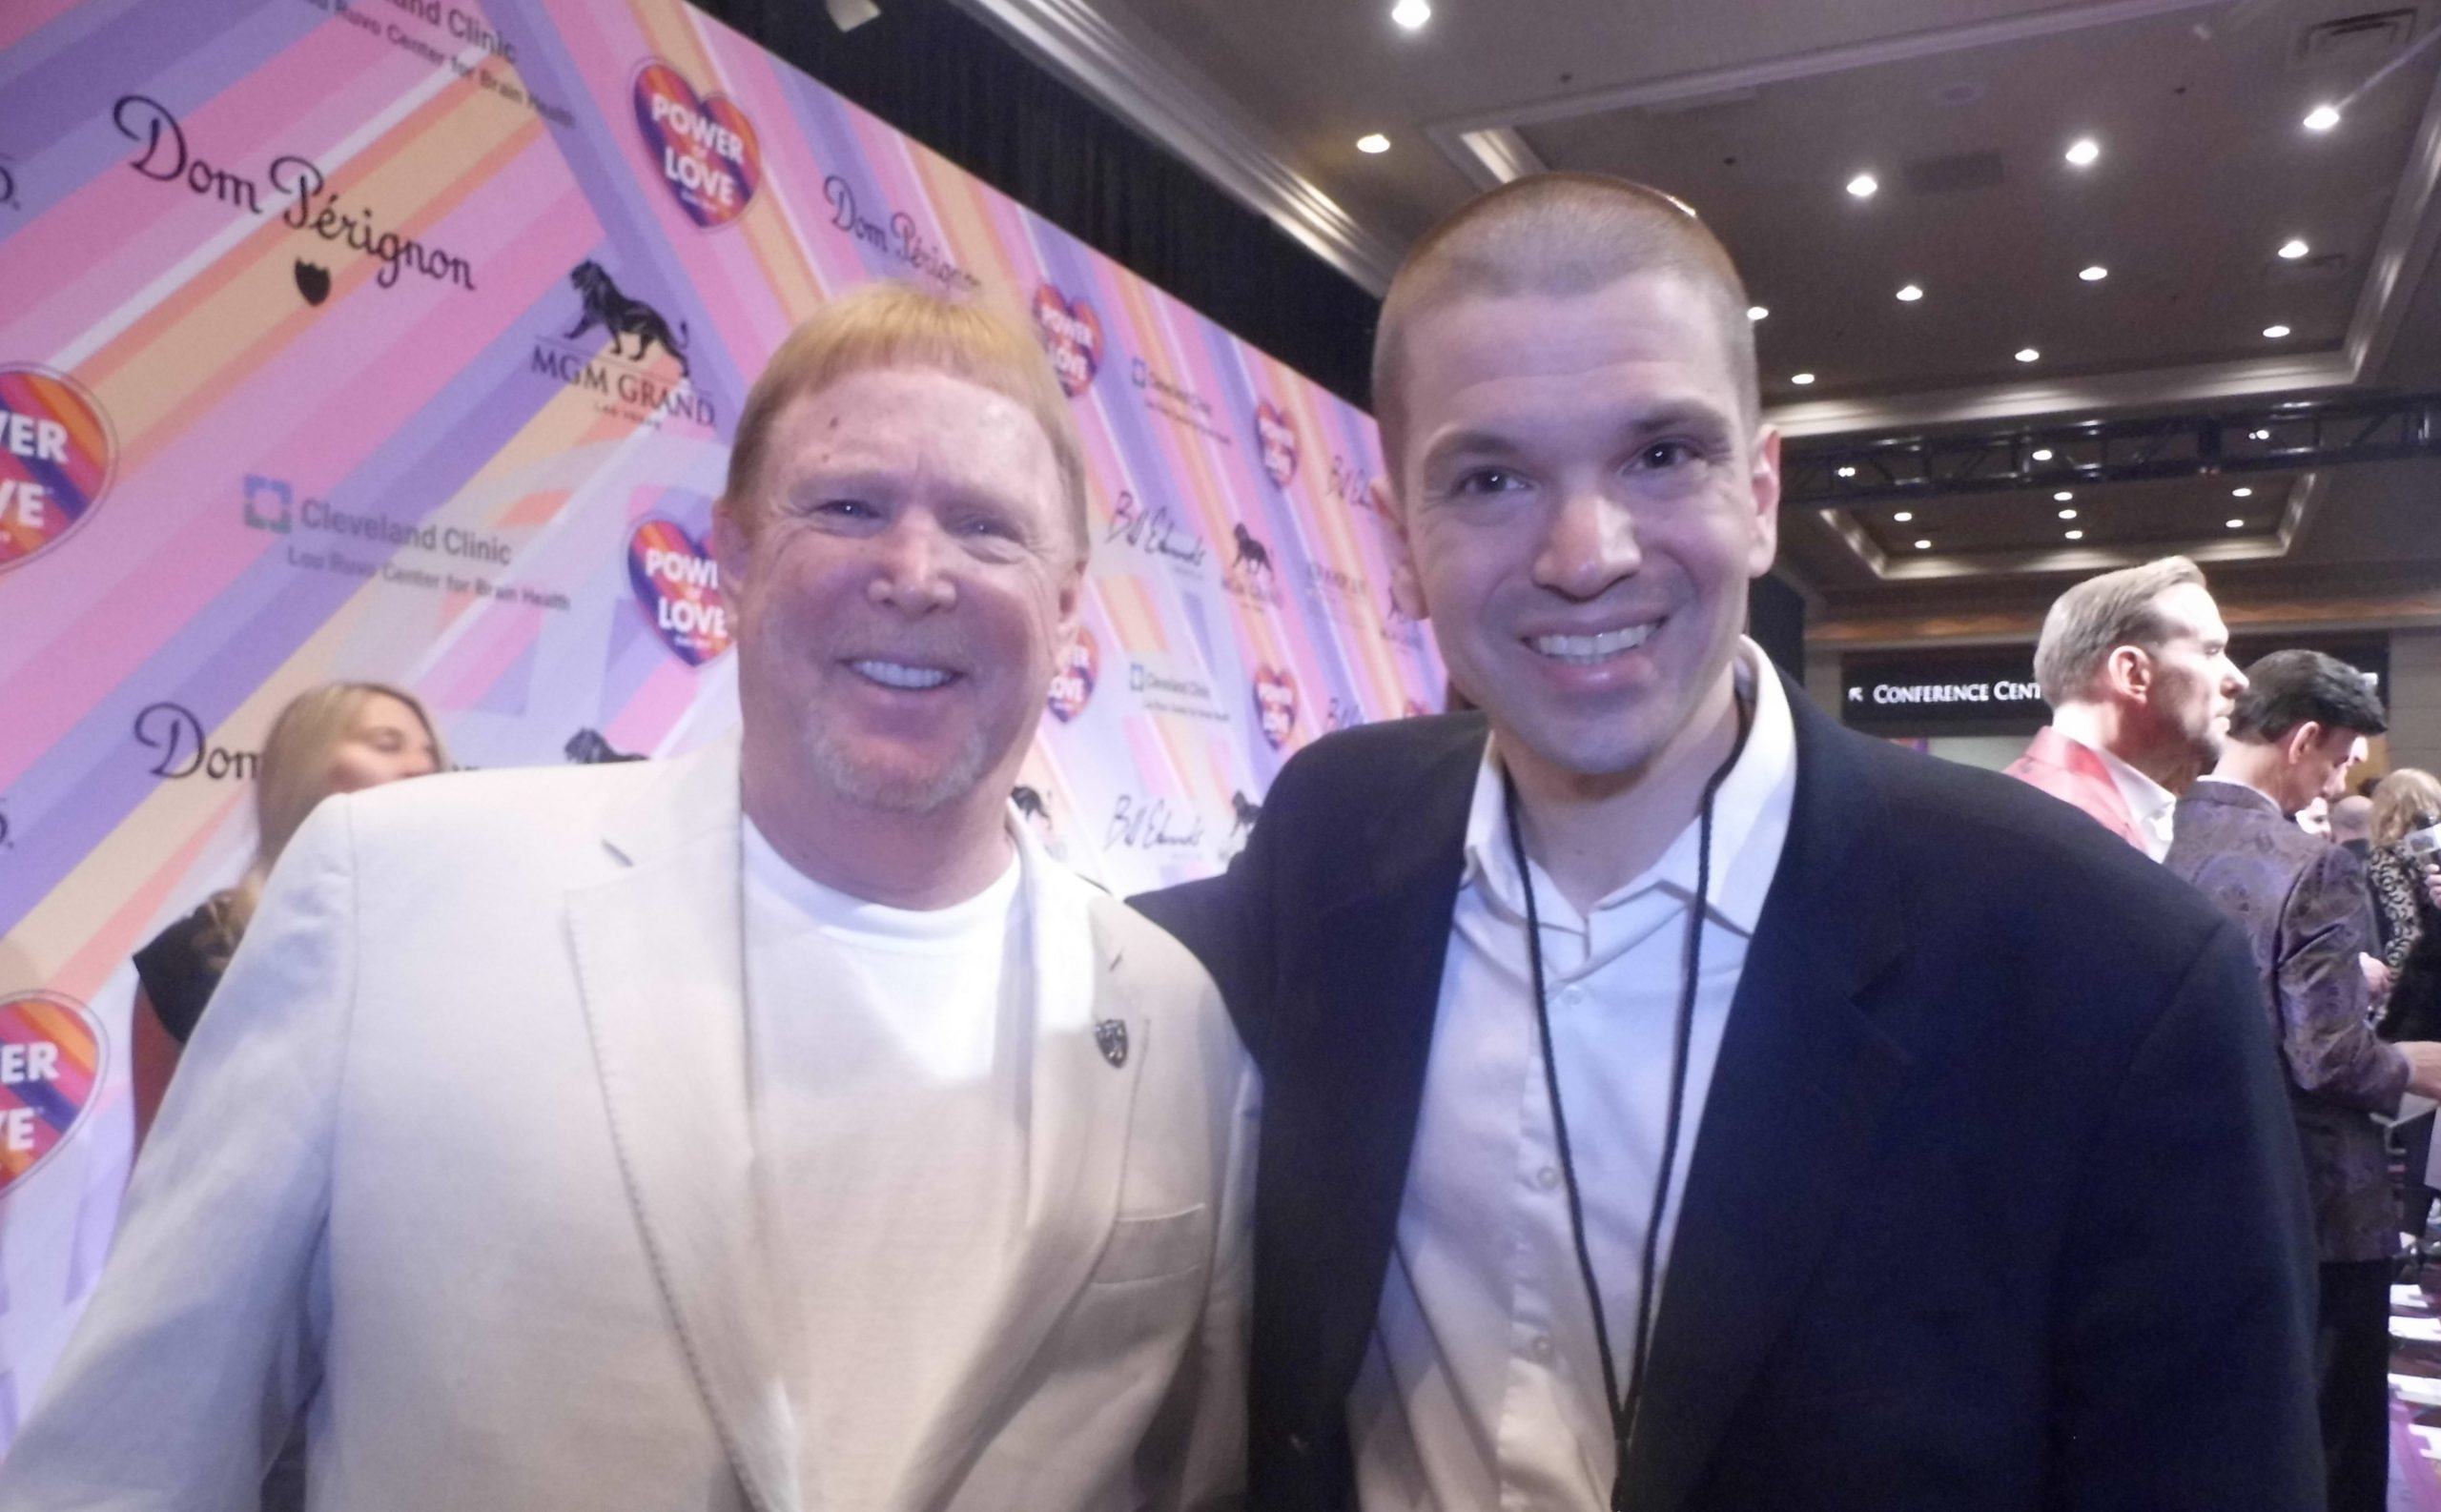 Mark Davis, Chris Yandek, Raiders Owner Mark Davis, Power of Love Gala 2019, Power of Love Gala Mark Davis, Mark Davis Las Vegas 2019, Chris Yandek Mark Davis